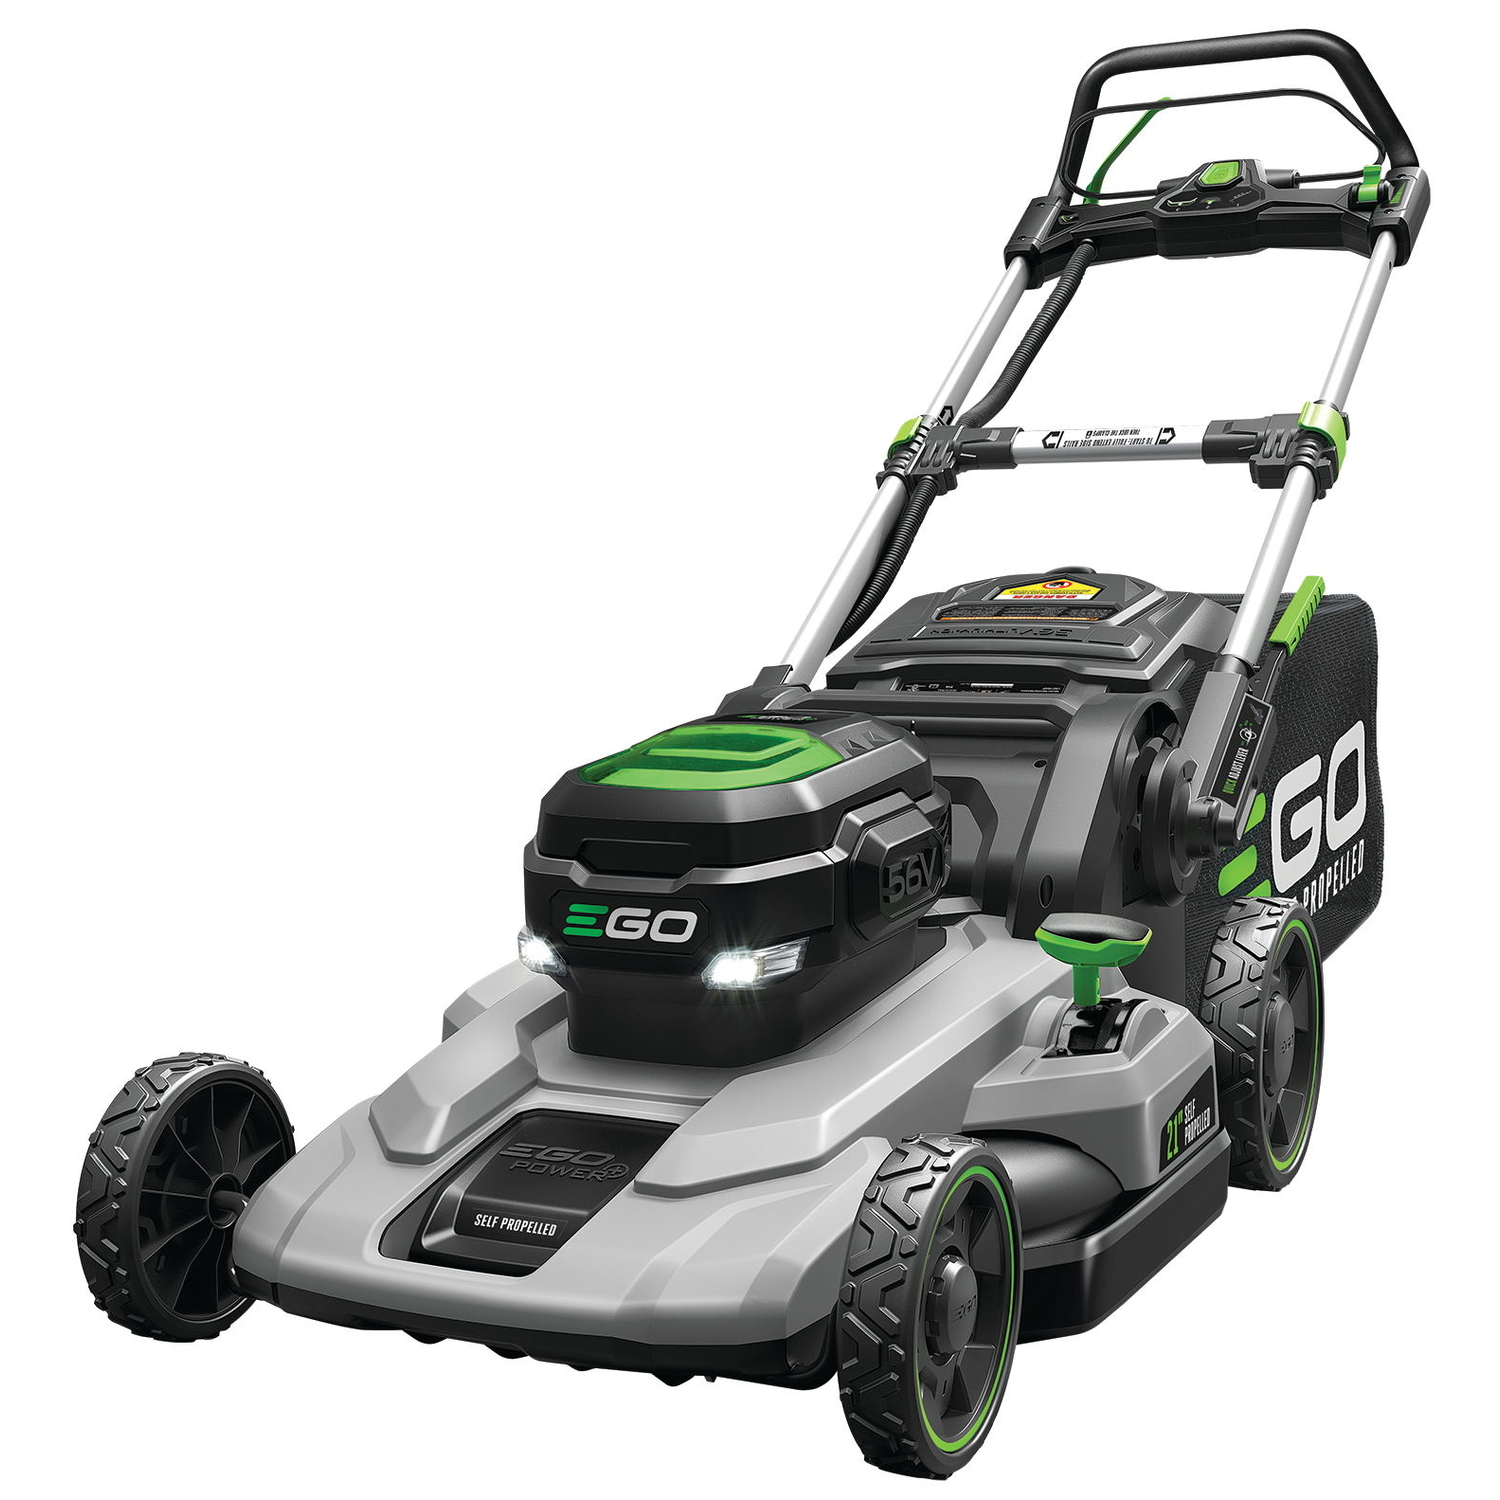 Electric Lawn Mower Sale Lawn Mowers And Push Mowers At Ace Hardware